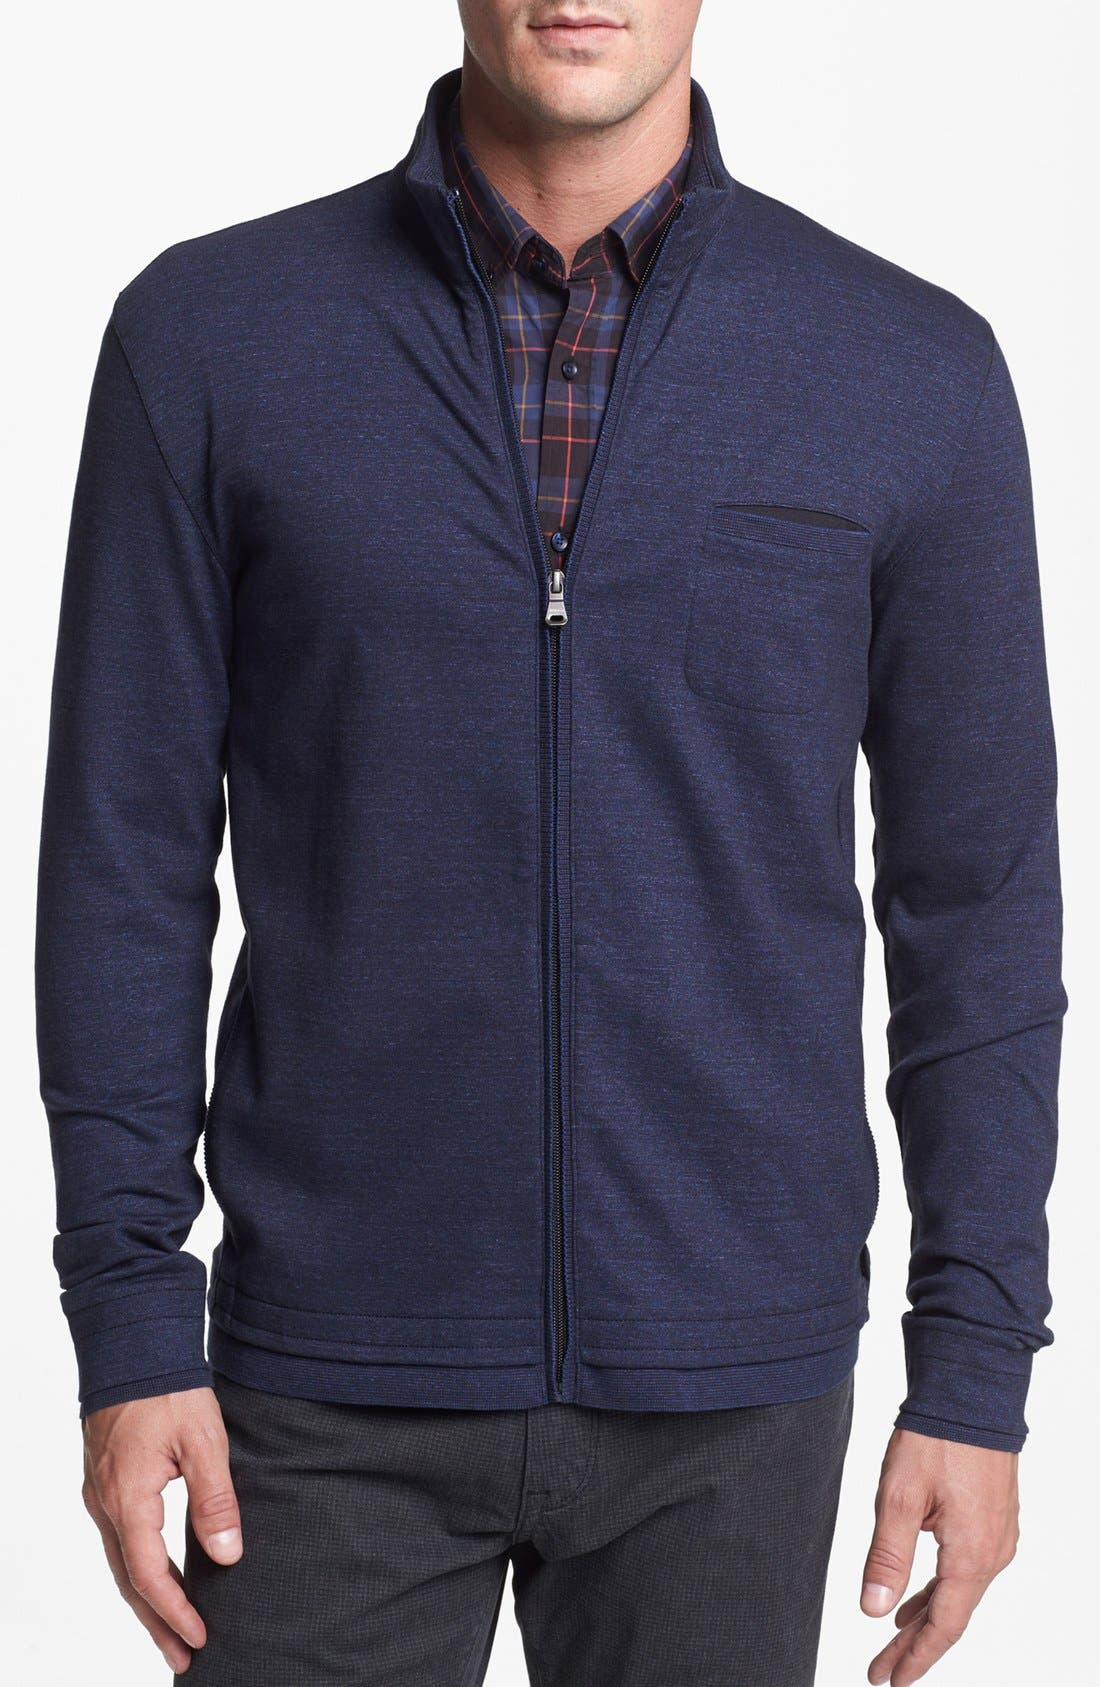 Alternate Image 1 Selected - BOSS HUGO BOSS 'Cannobio' Zip Front Sweatshirt